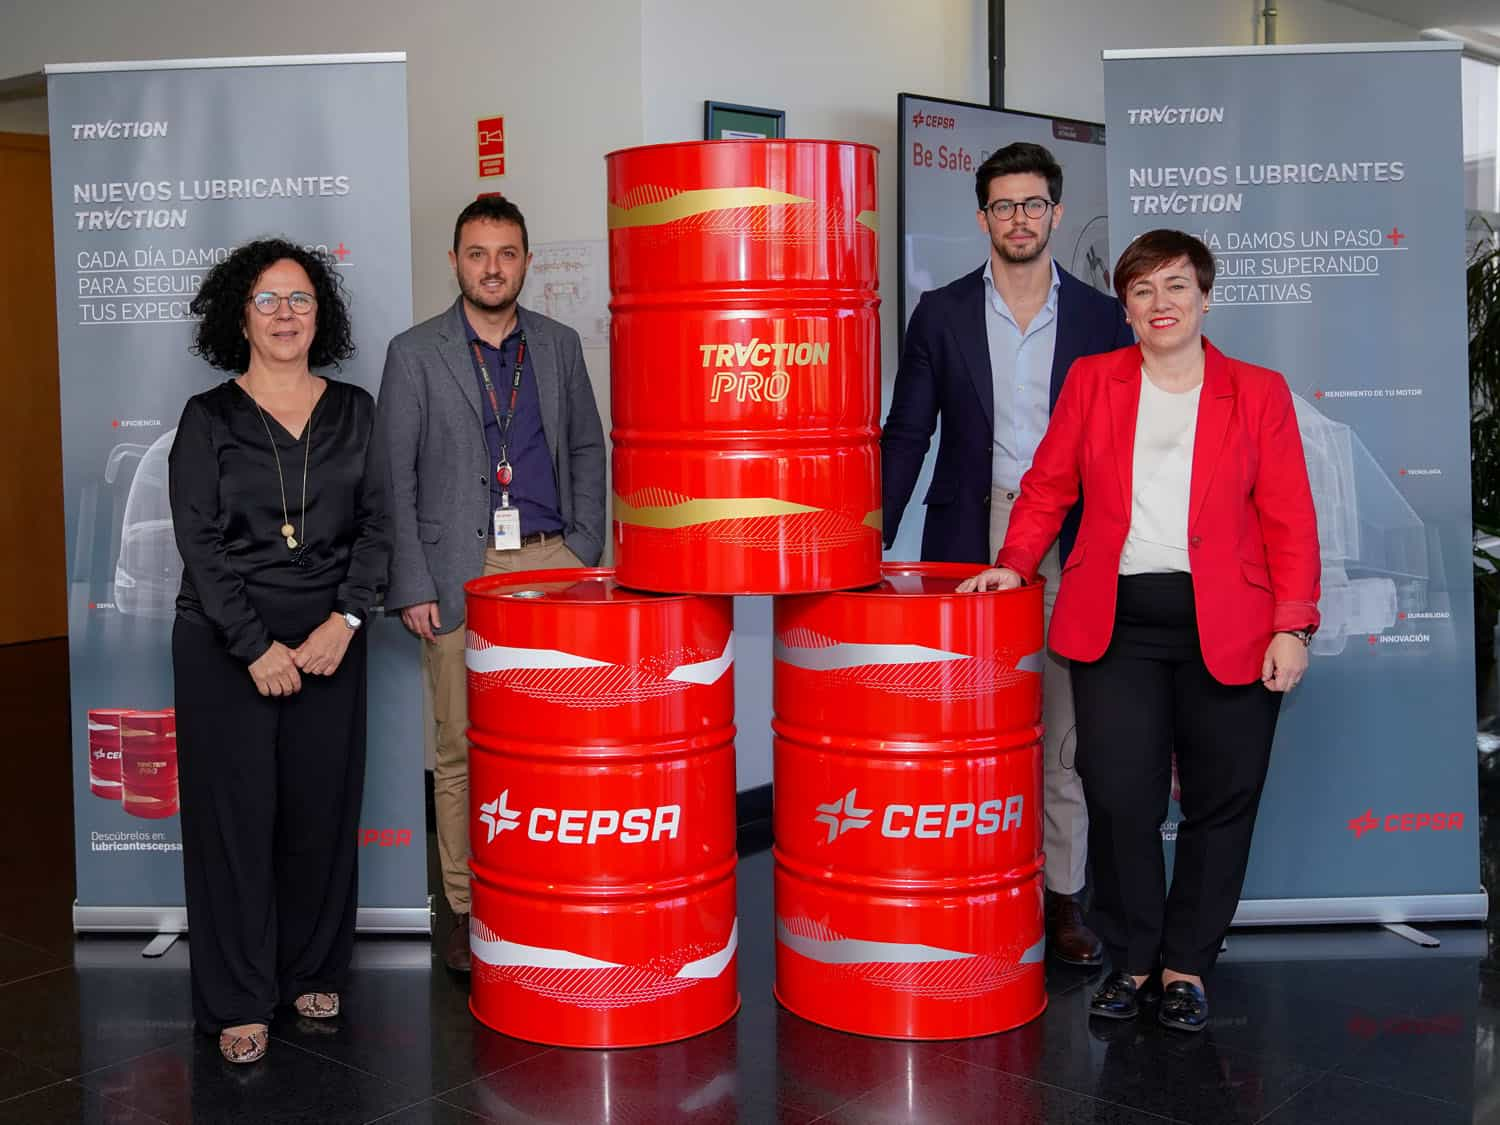 Juana Frontela (Head of Cepsa Research Center), Alejandro Gautier (lubricants specialist), Fernando de Andrés (lubricants specialist ) and Niurka Sancho (Director of  Lubricants)